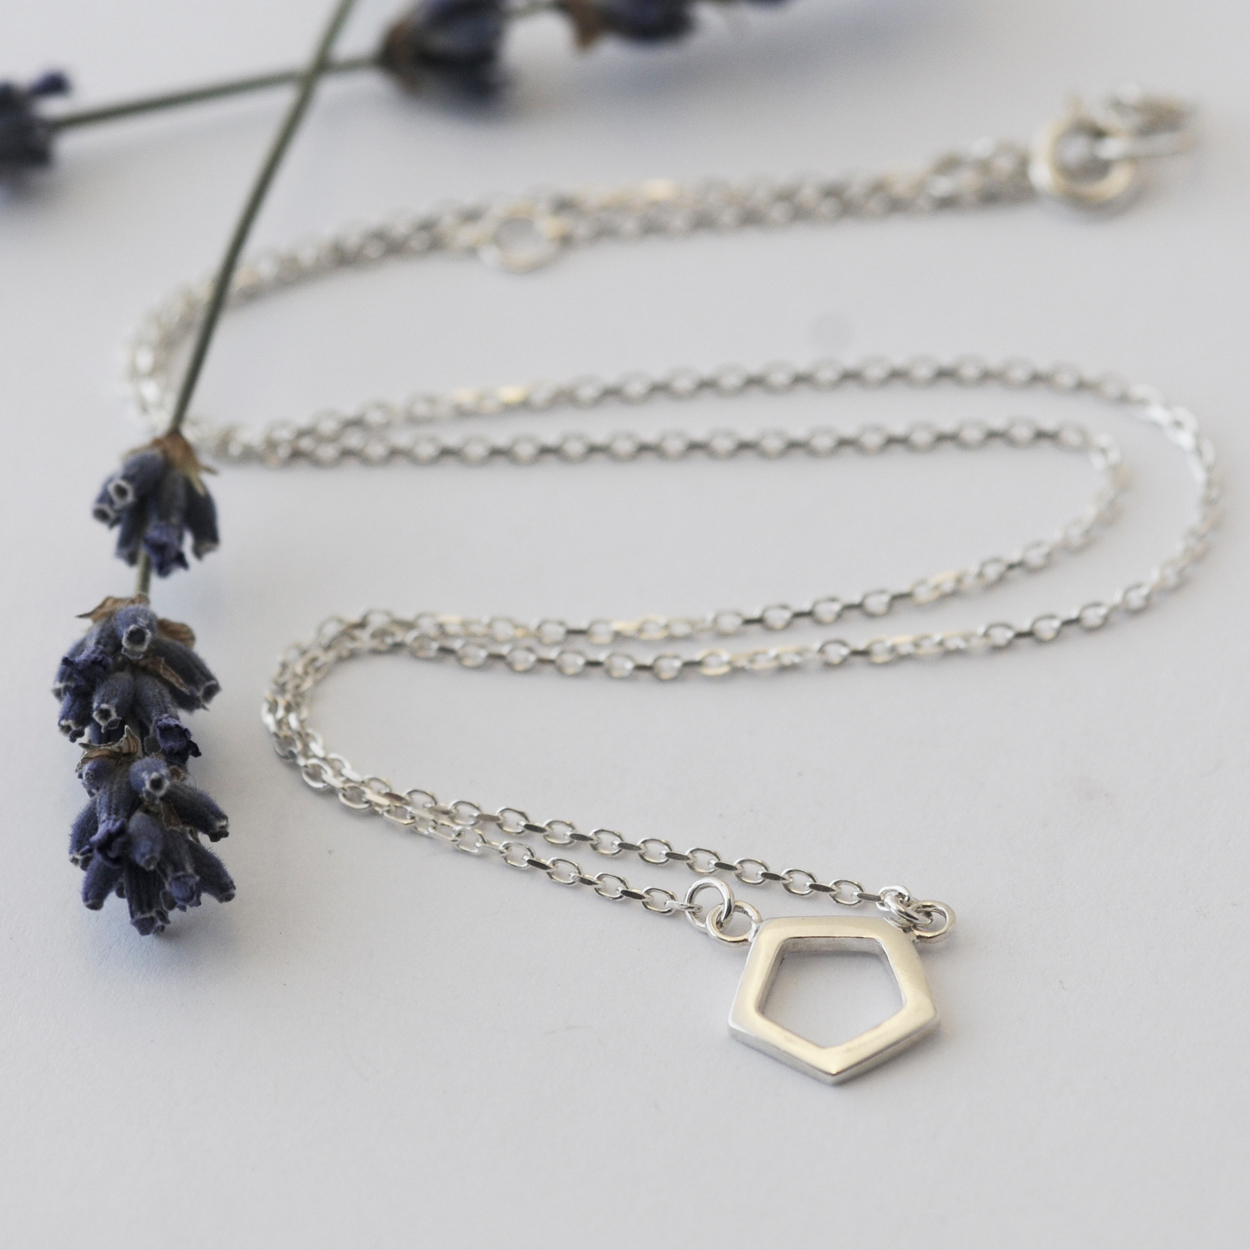 Mini Pentagon necklace